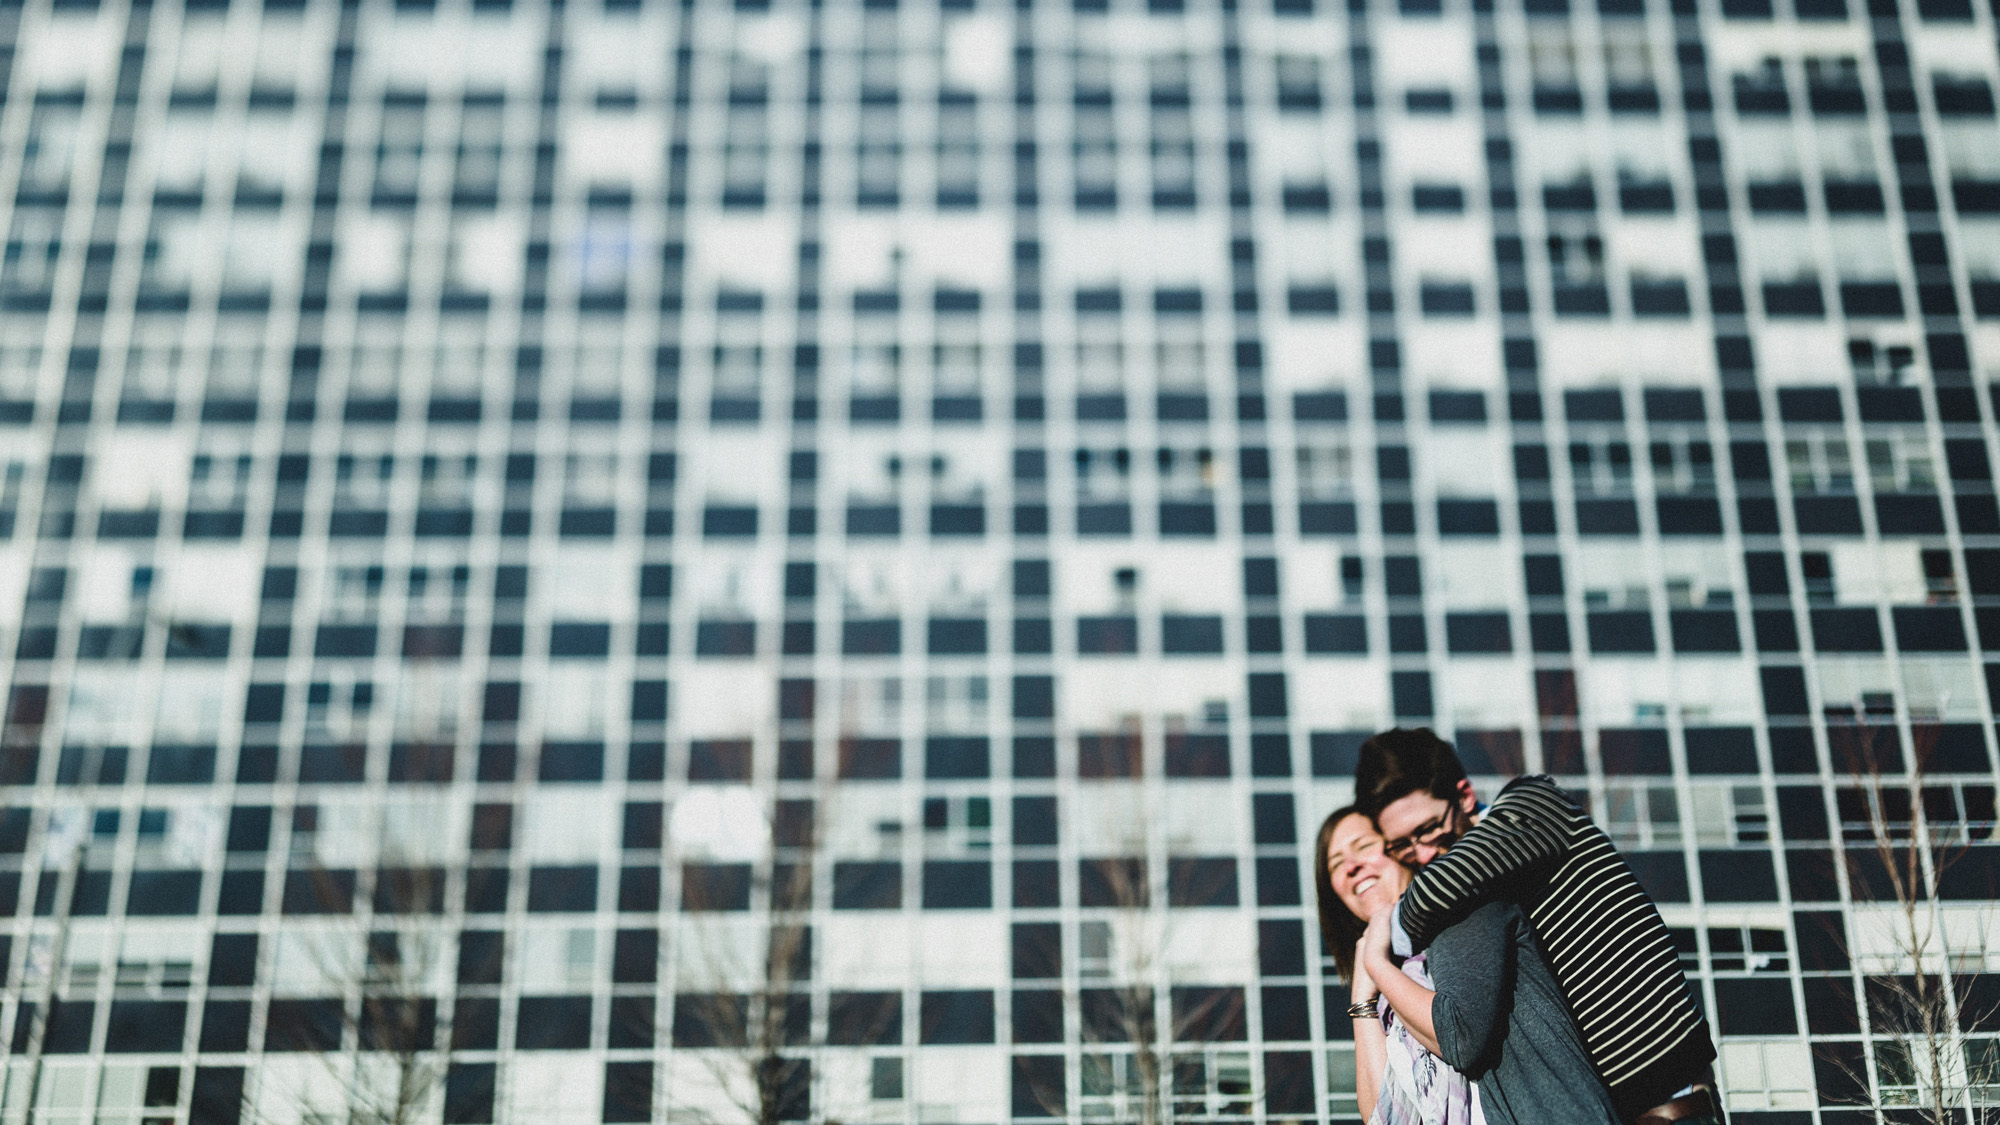 alec_vanderboom_drambour_Kansas_City_Engagement_Session-0013.jpg